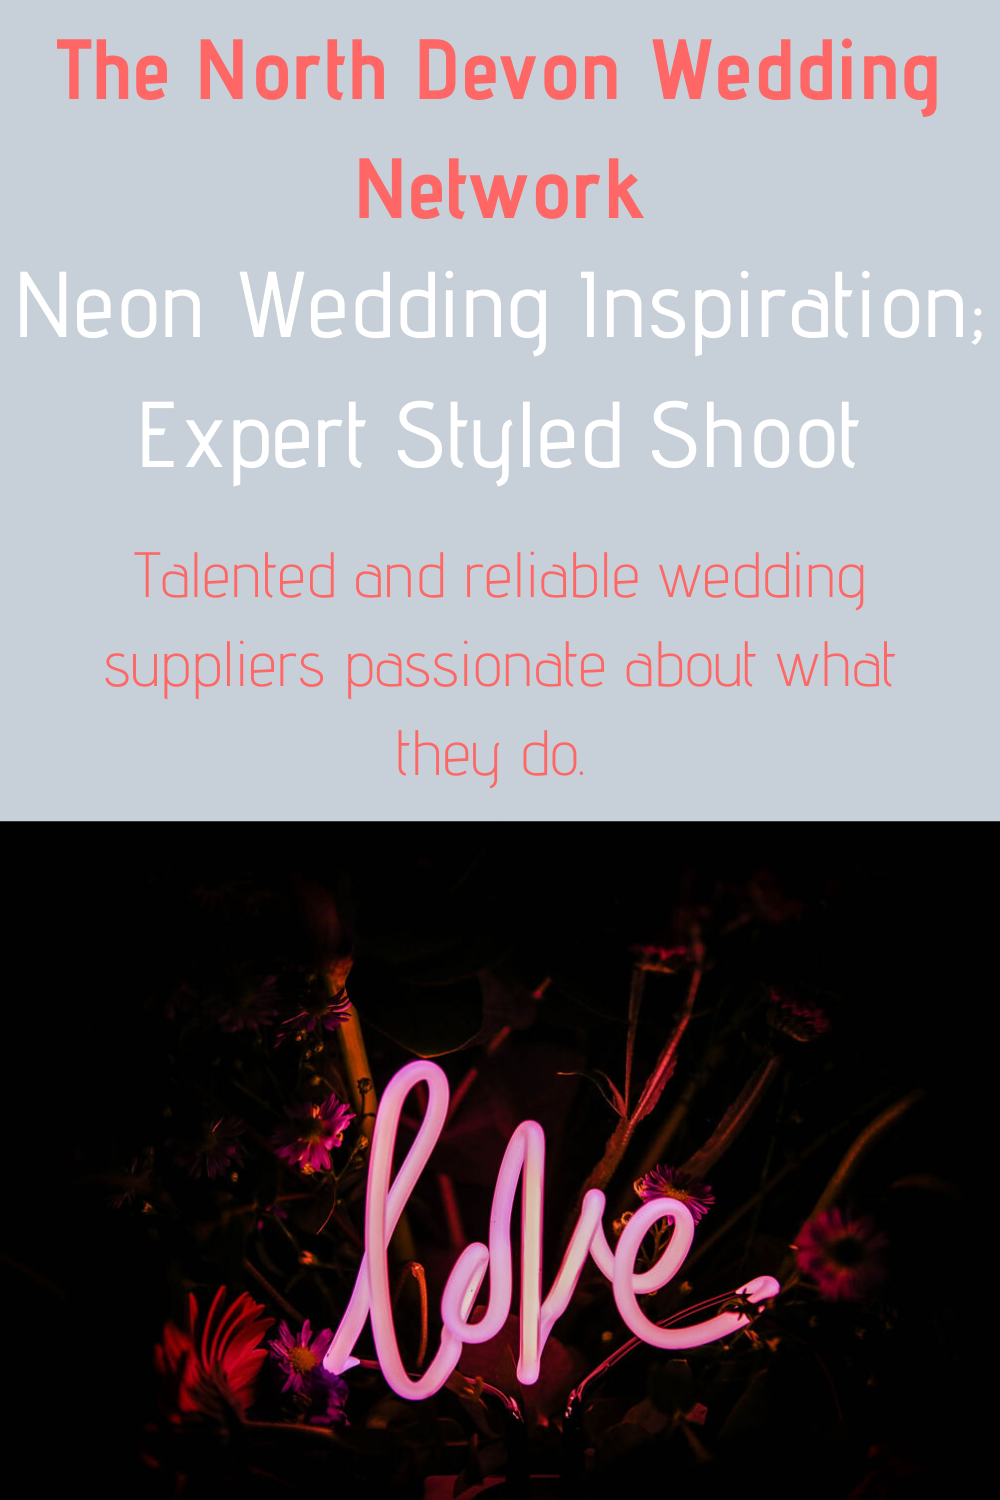 Neon Wedding inspiration; expert styled shoot